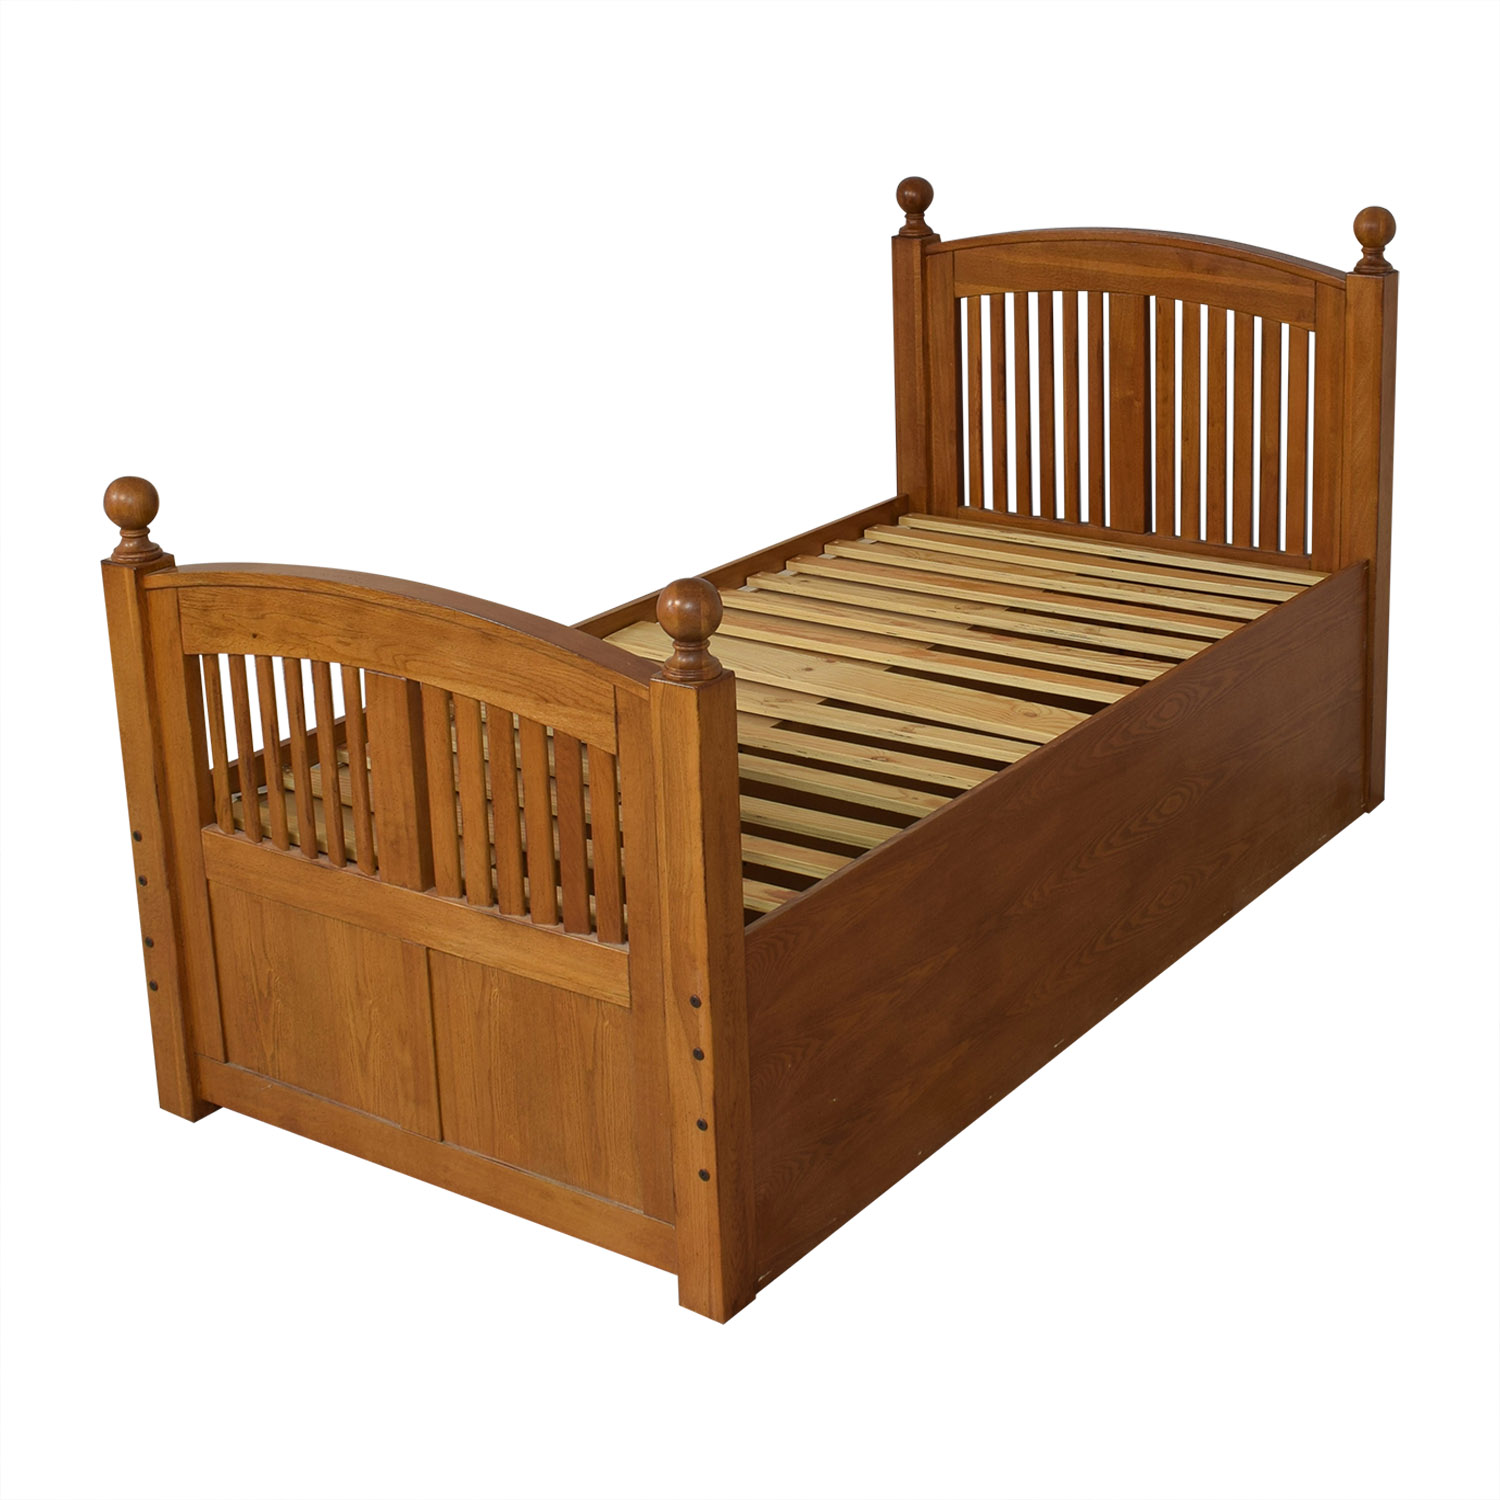 Stanley Furniture Stanley Furniture Twin Captains Storage Bed coupon